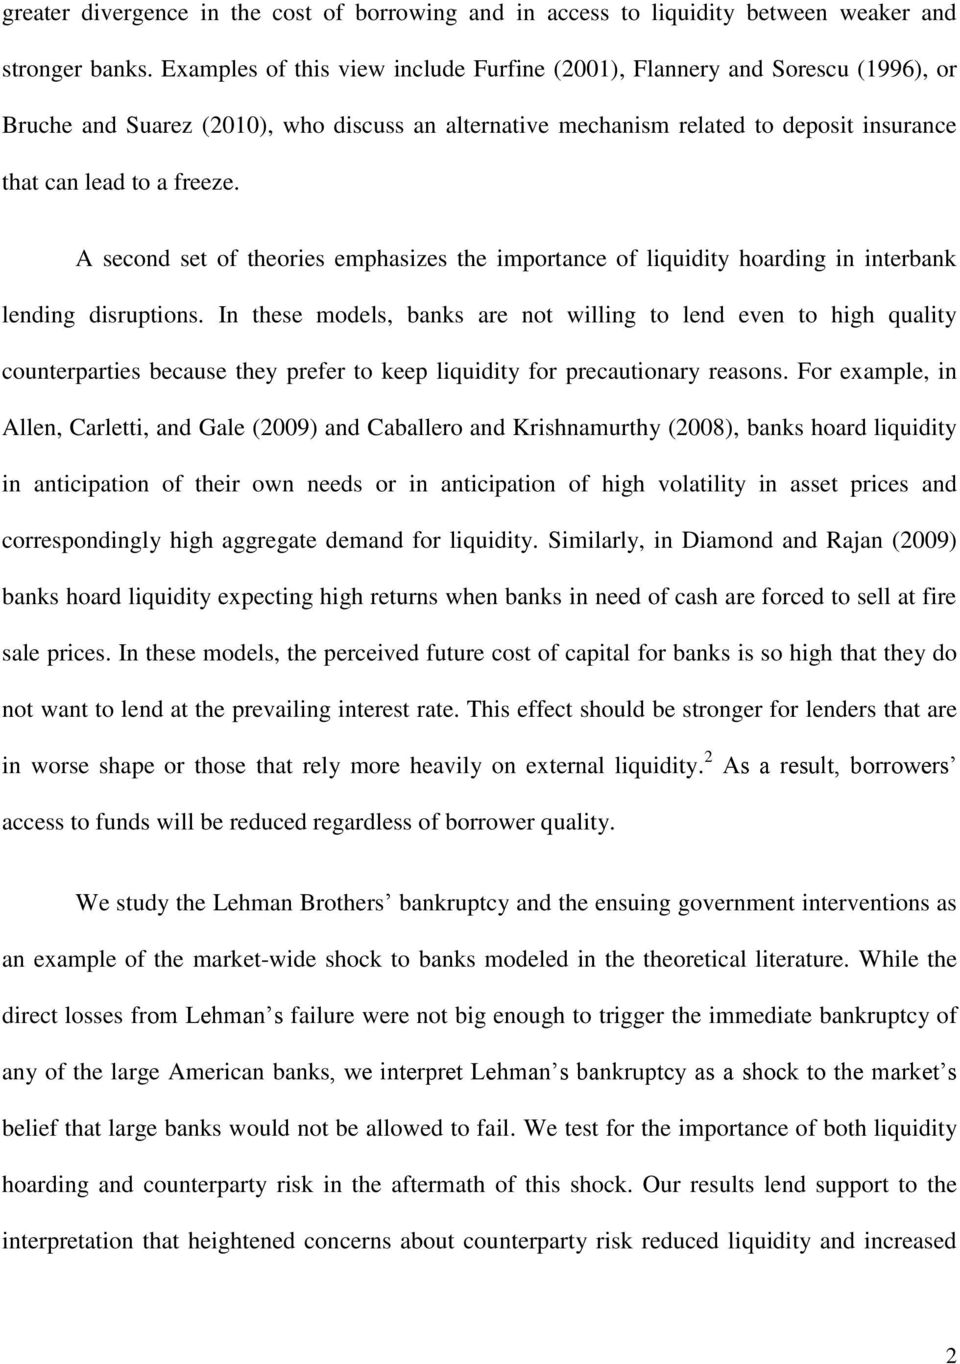 A second set of theories emphasizes the importance of liquidity hoarding in interbank lending disruptions.